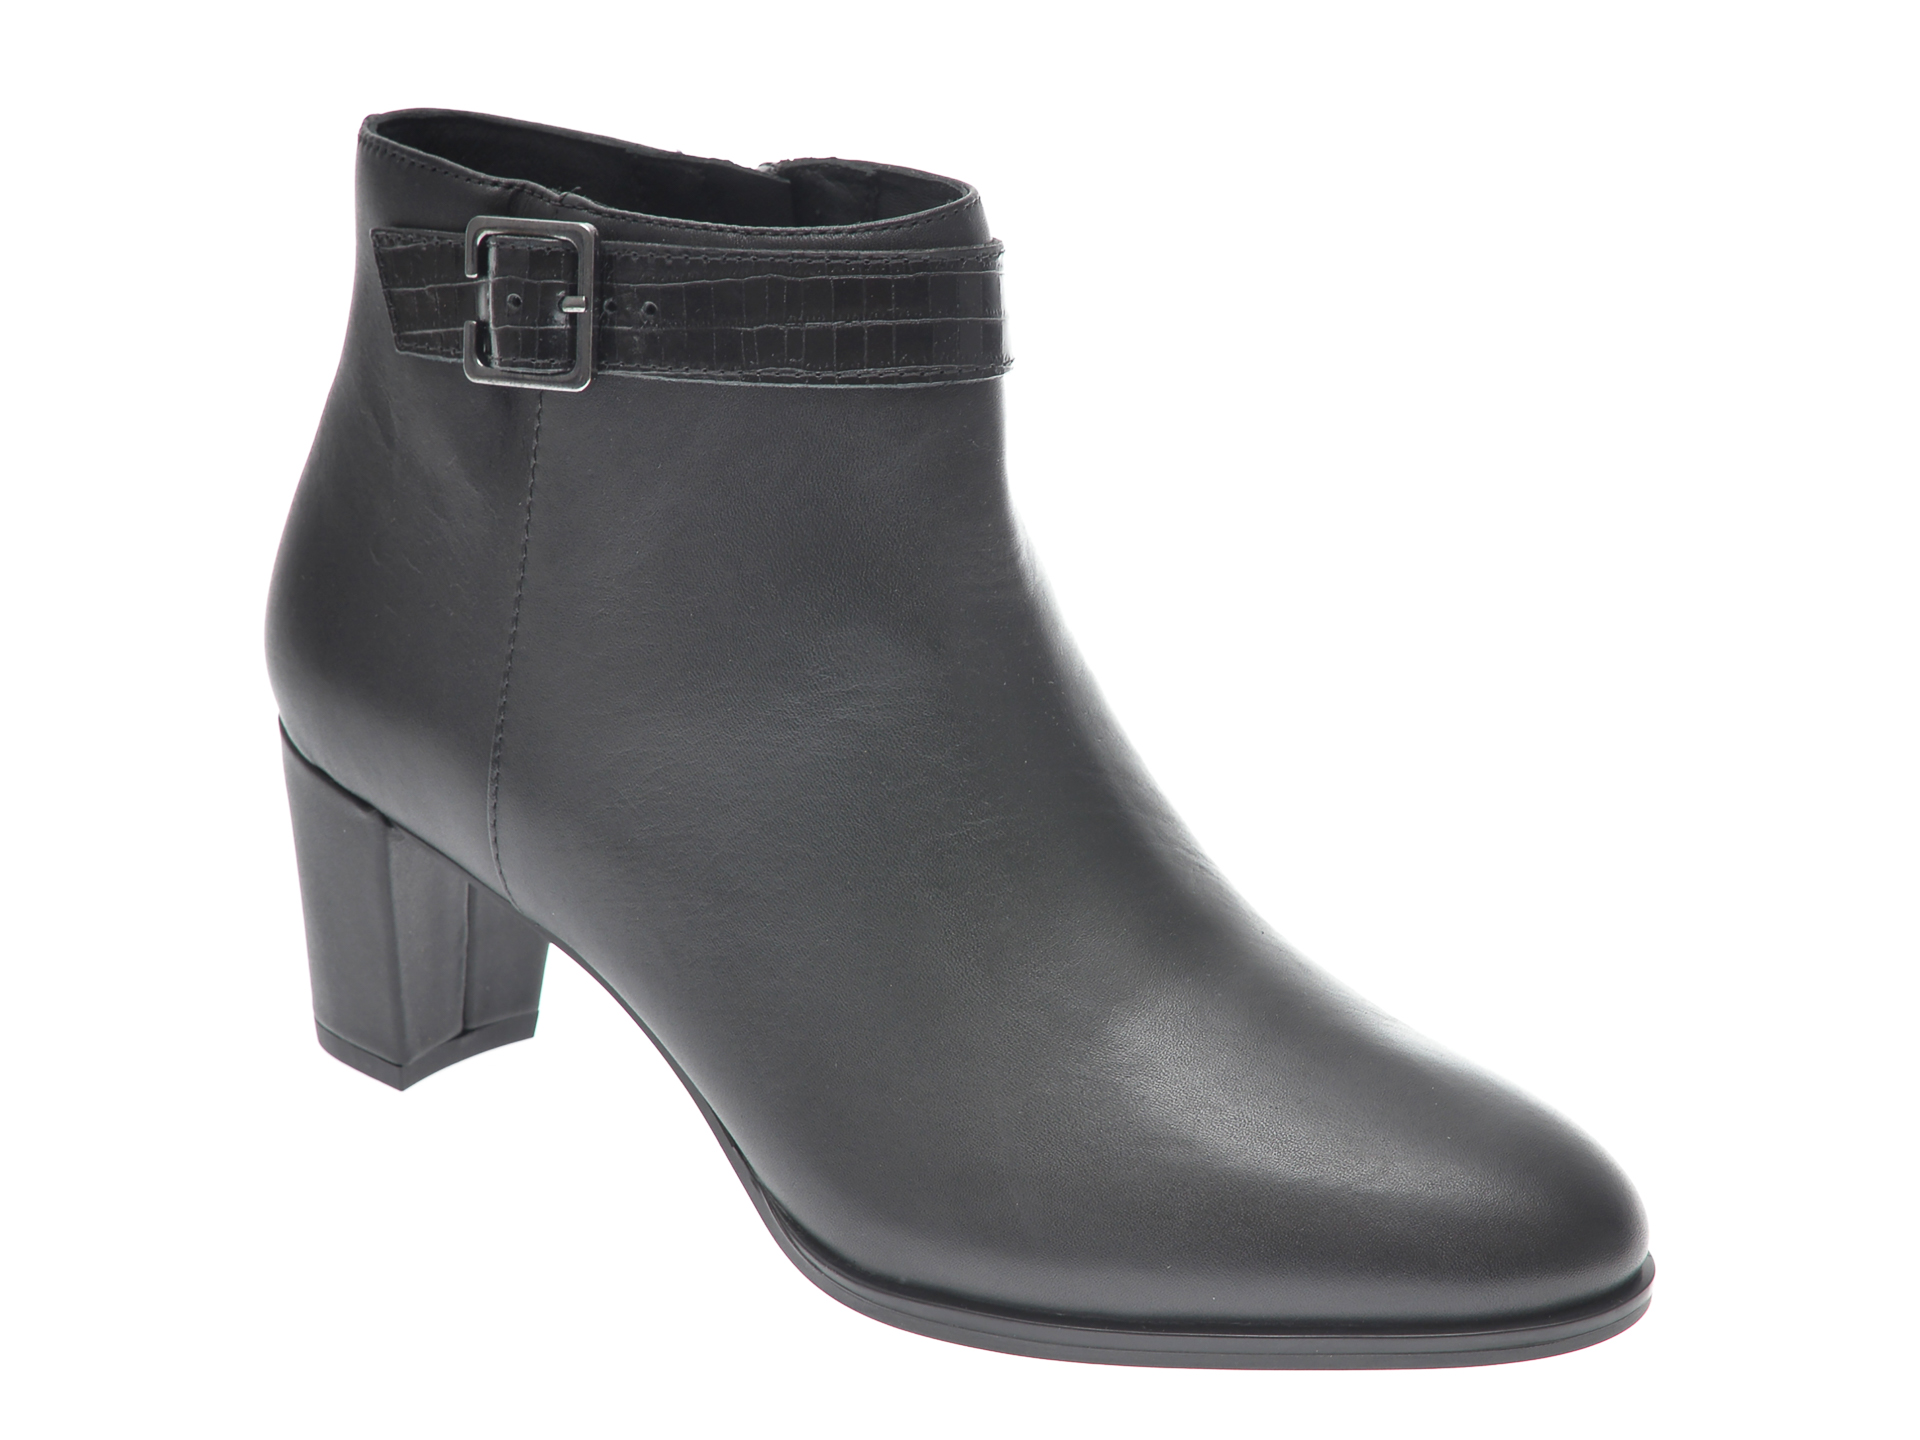 Ghete CLARKS negre, KAYLIN60 BOOT, din piele naturala imagine